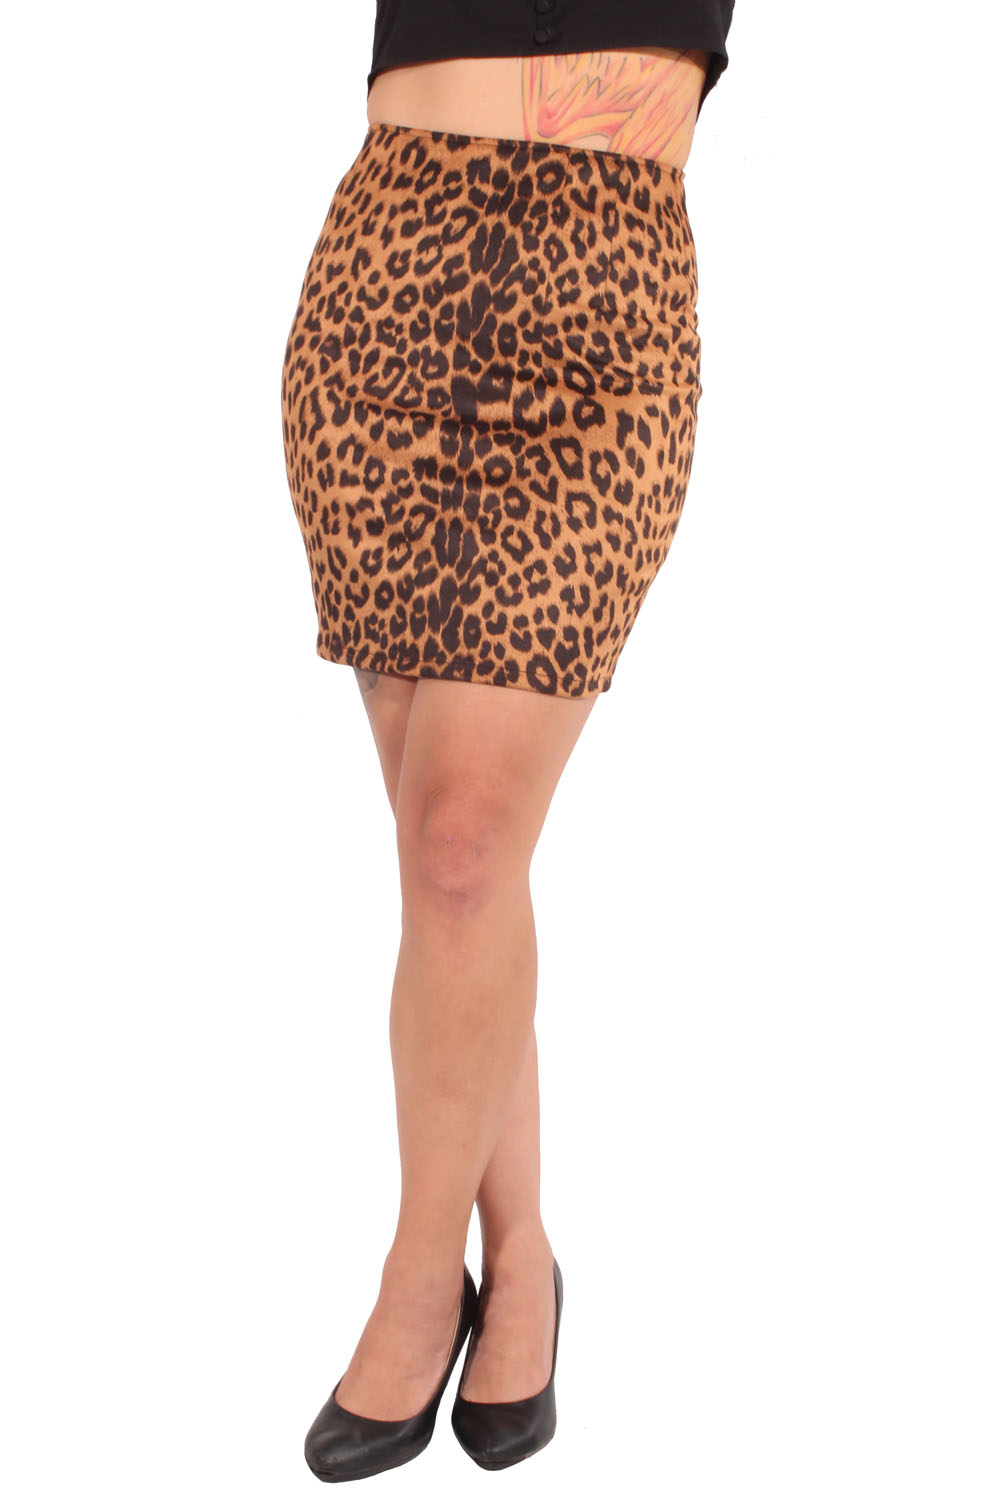 Leo pin up rockabilly Leoparden Pencil Rock Minirock braun